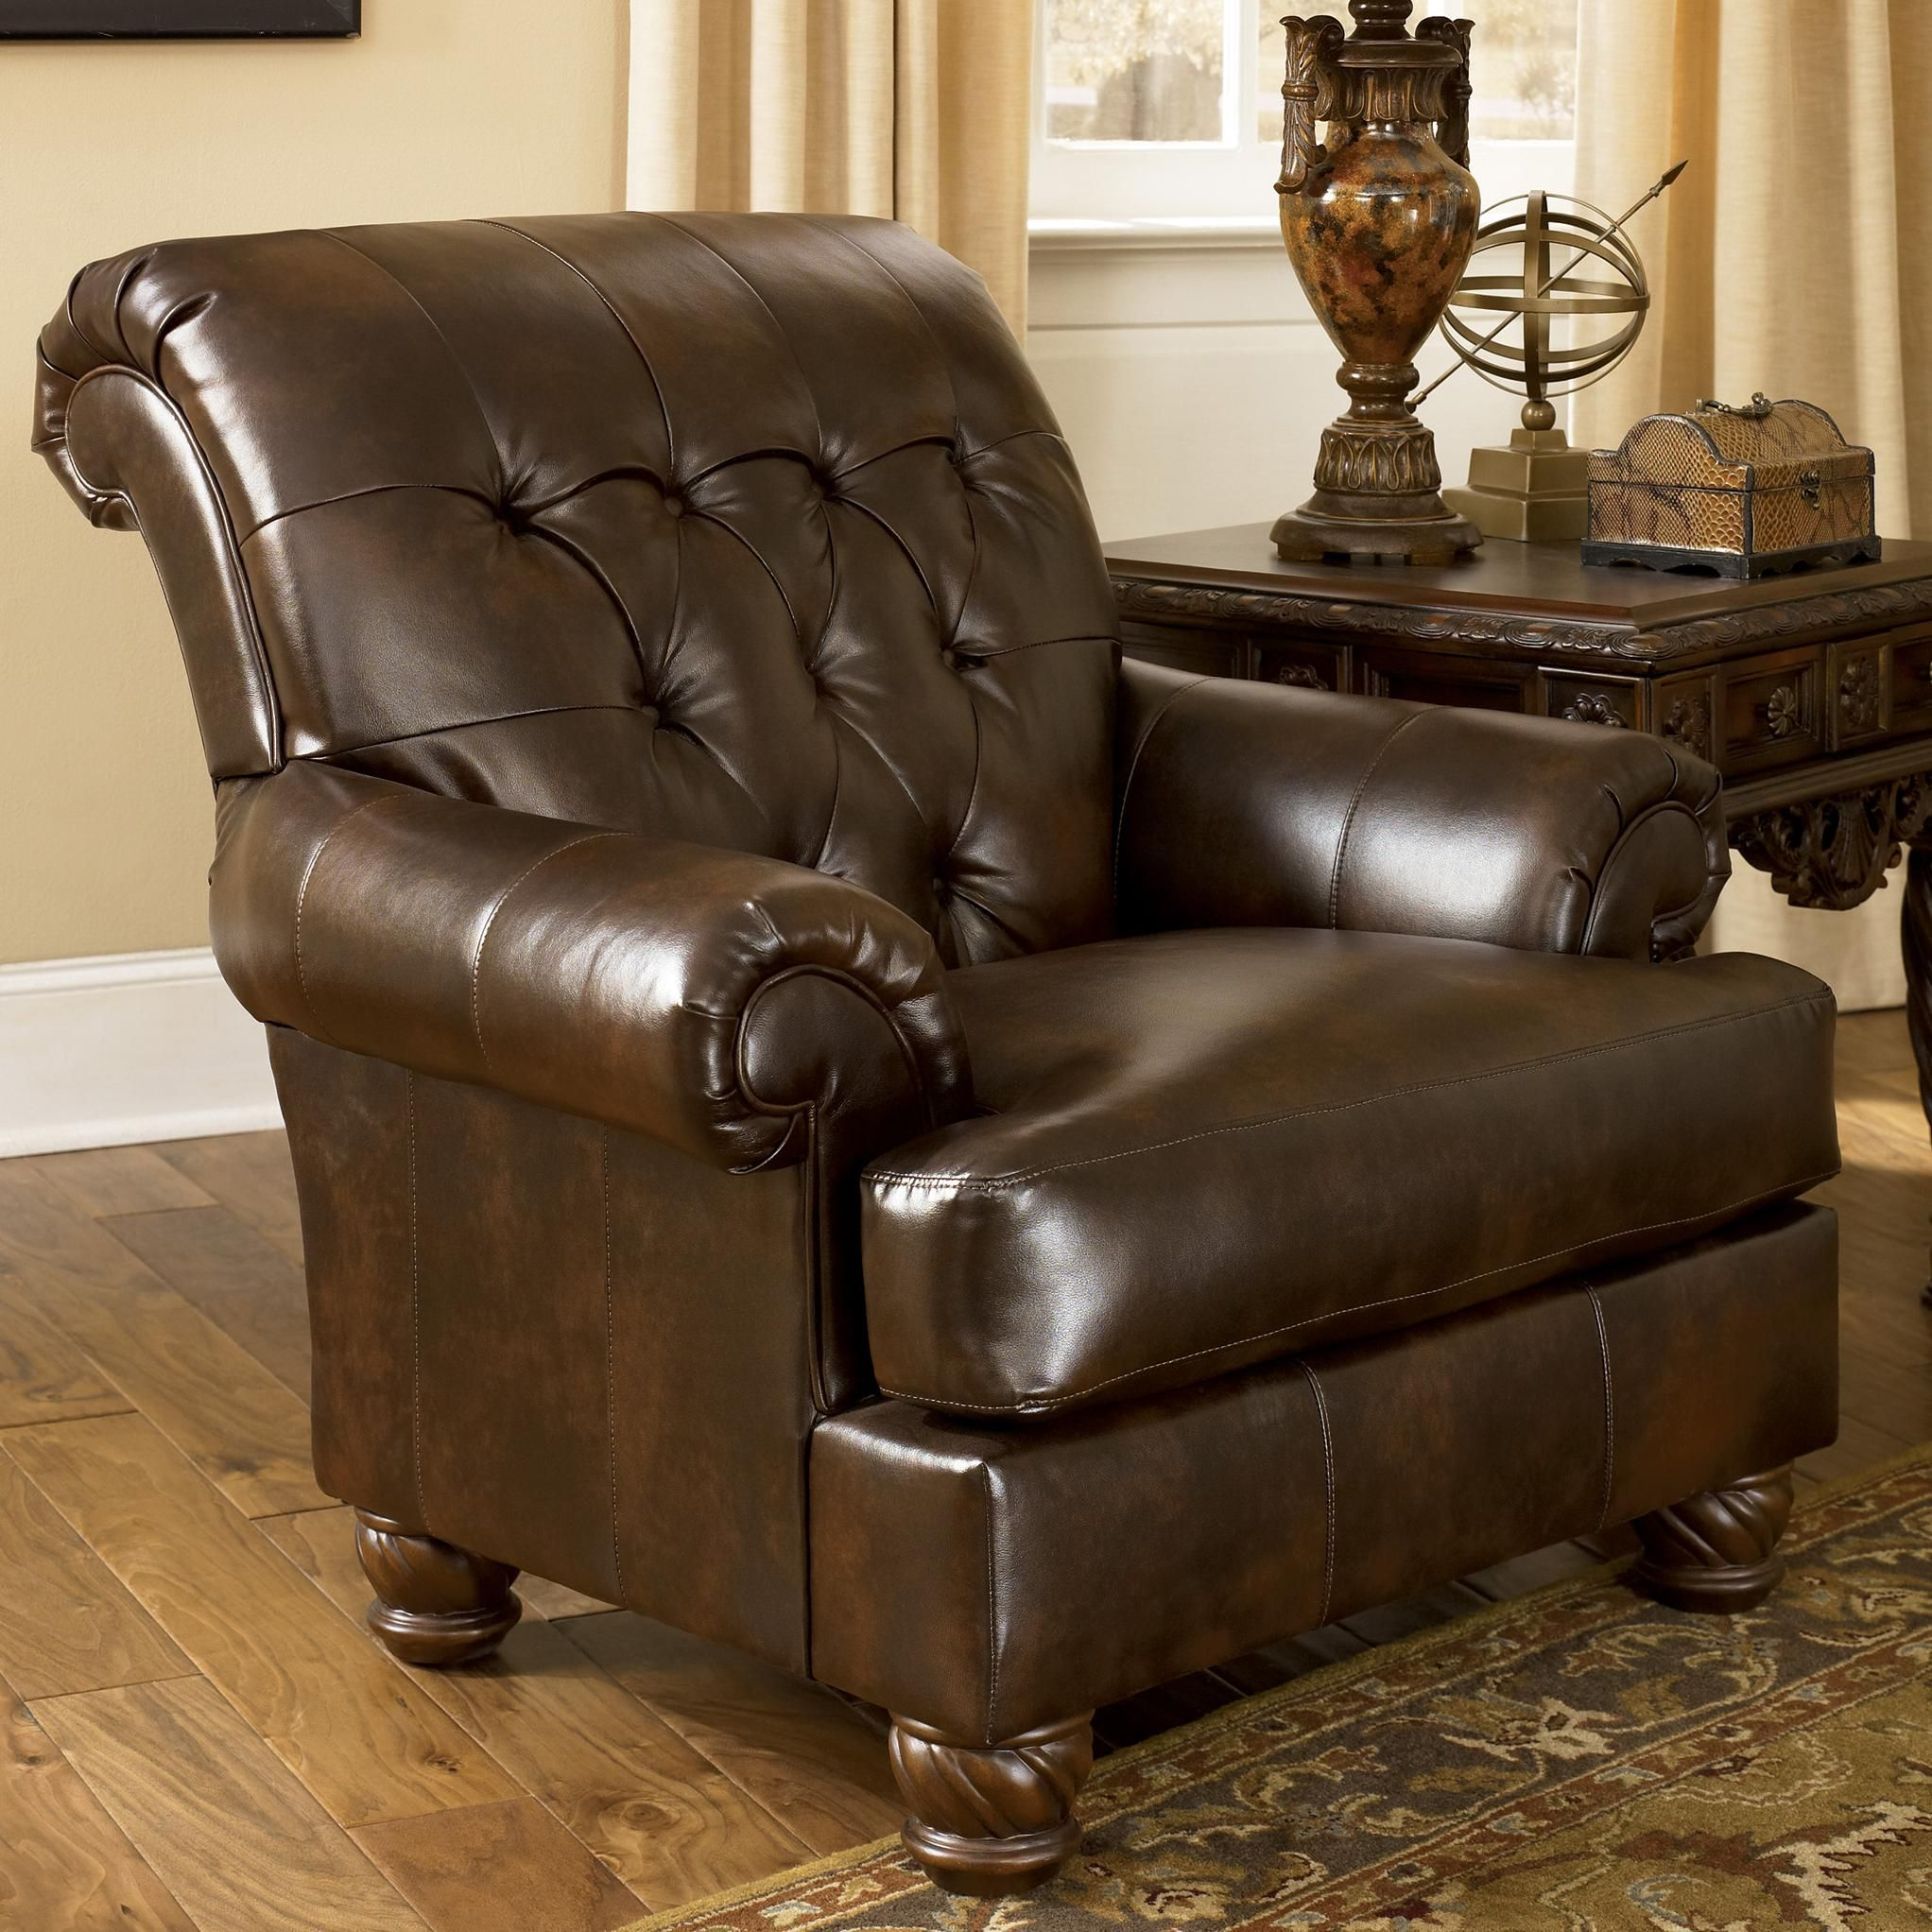 Bedrooms · Fresco DuraBlend   Antique Accent Chair ...